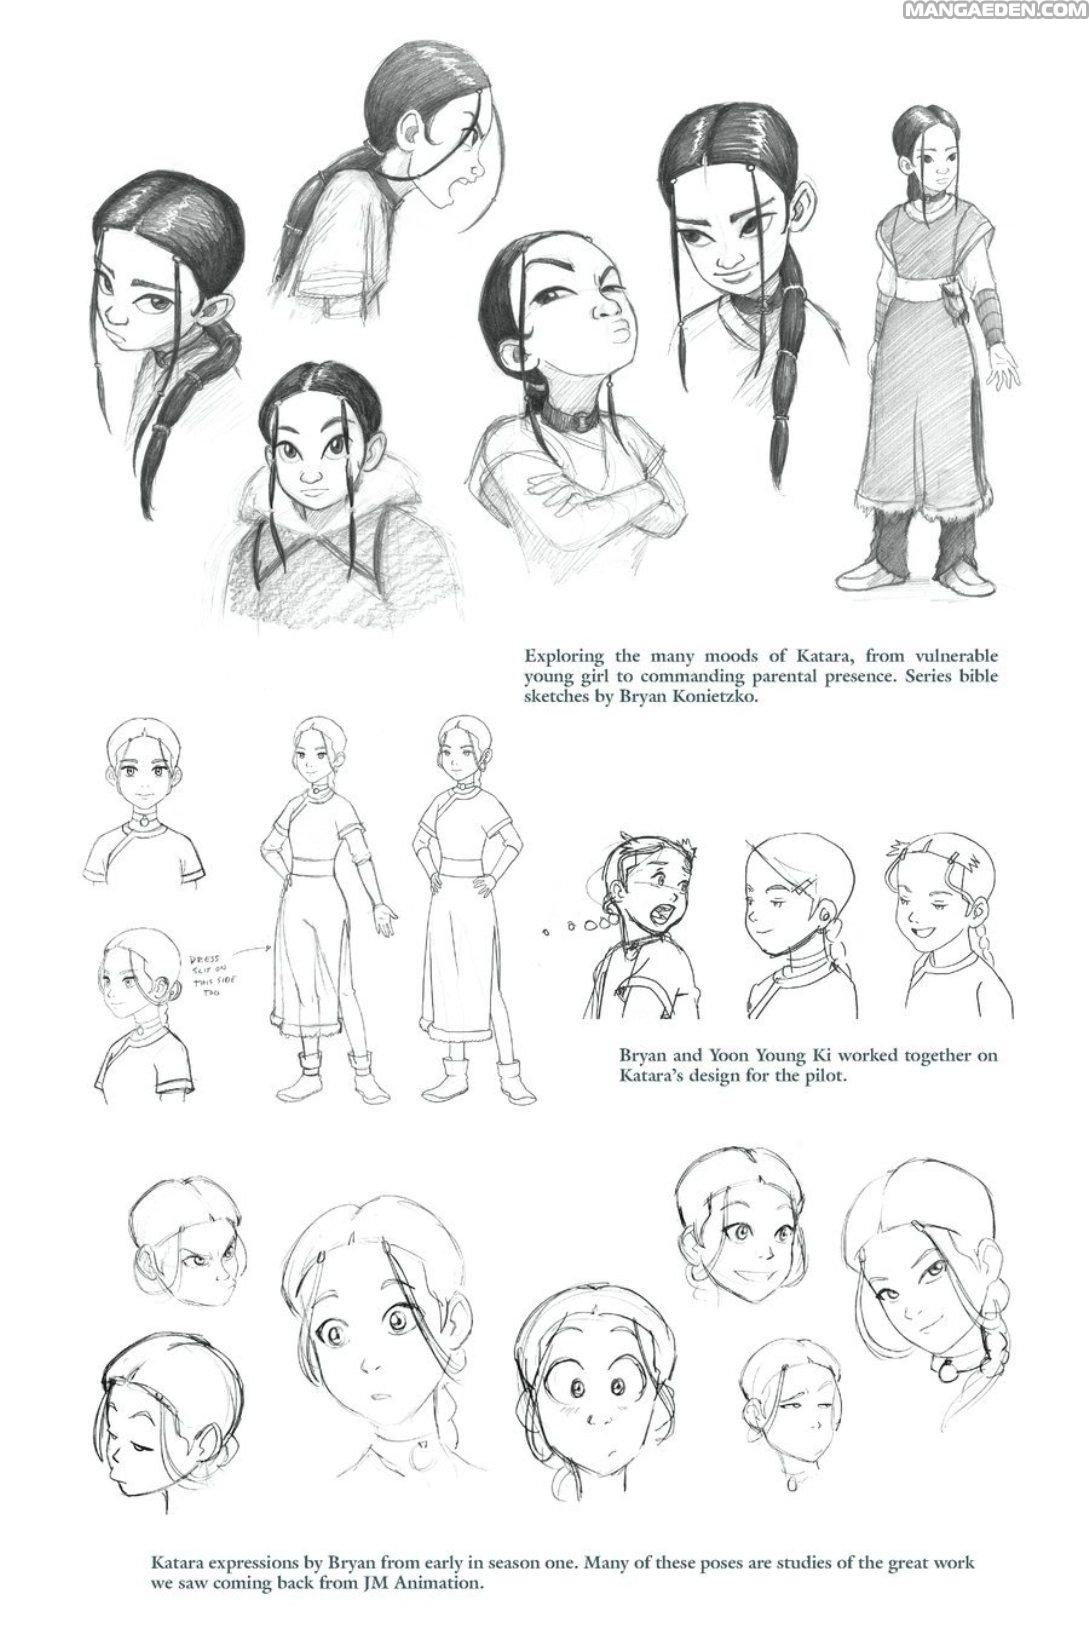 katara expressions by bryan from early season one